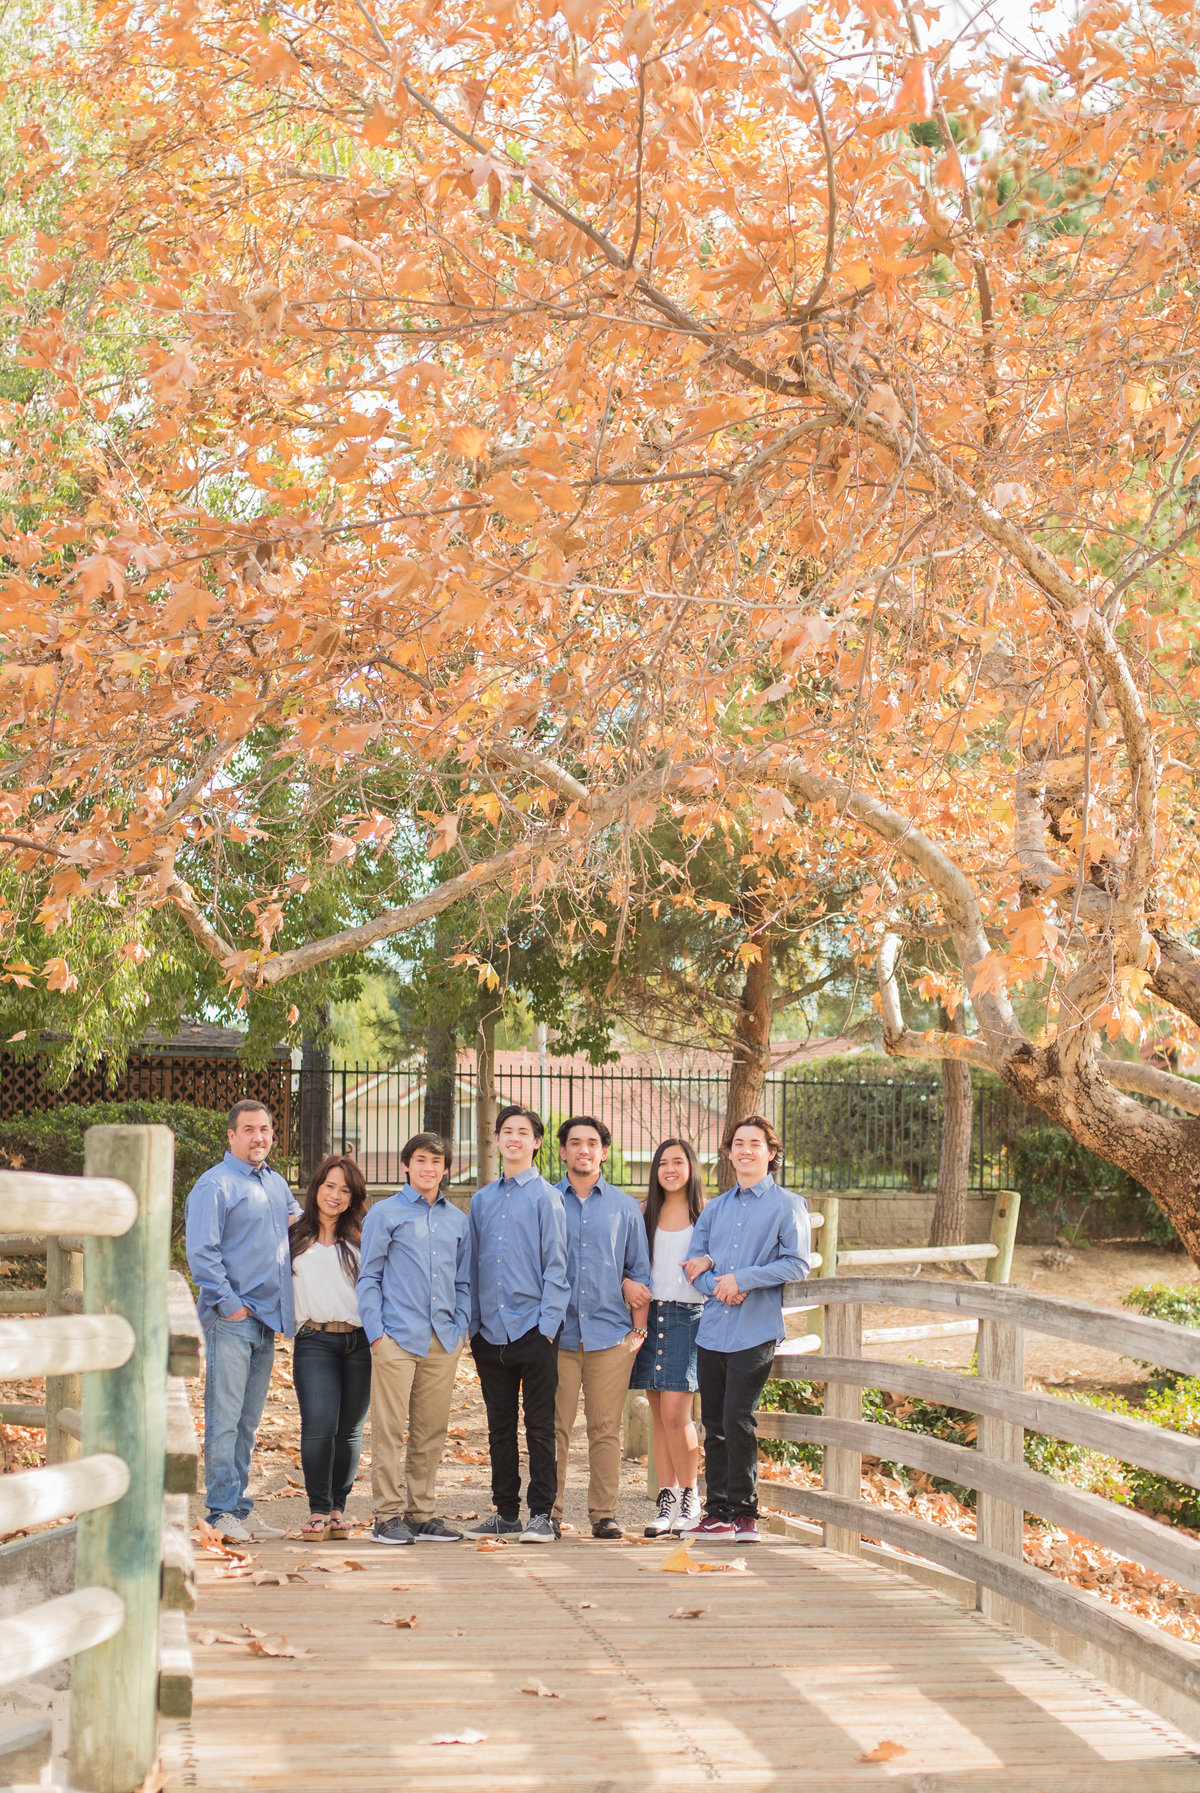 Outdoor Family Photos at Park Large Group